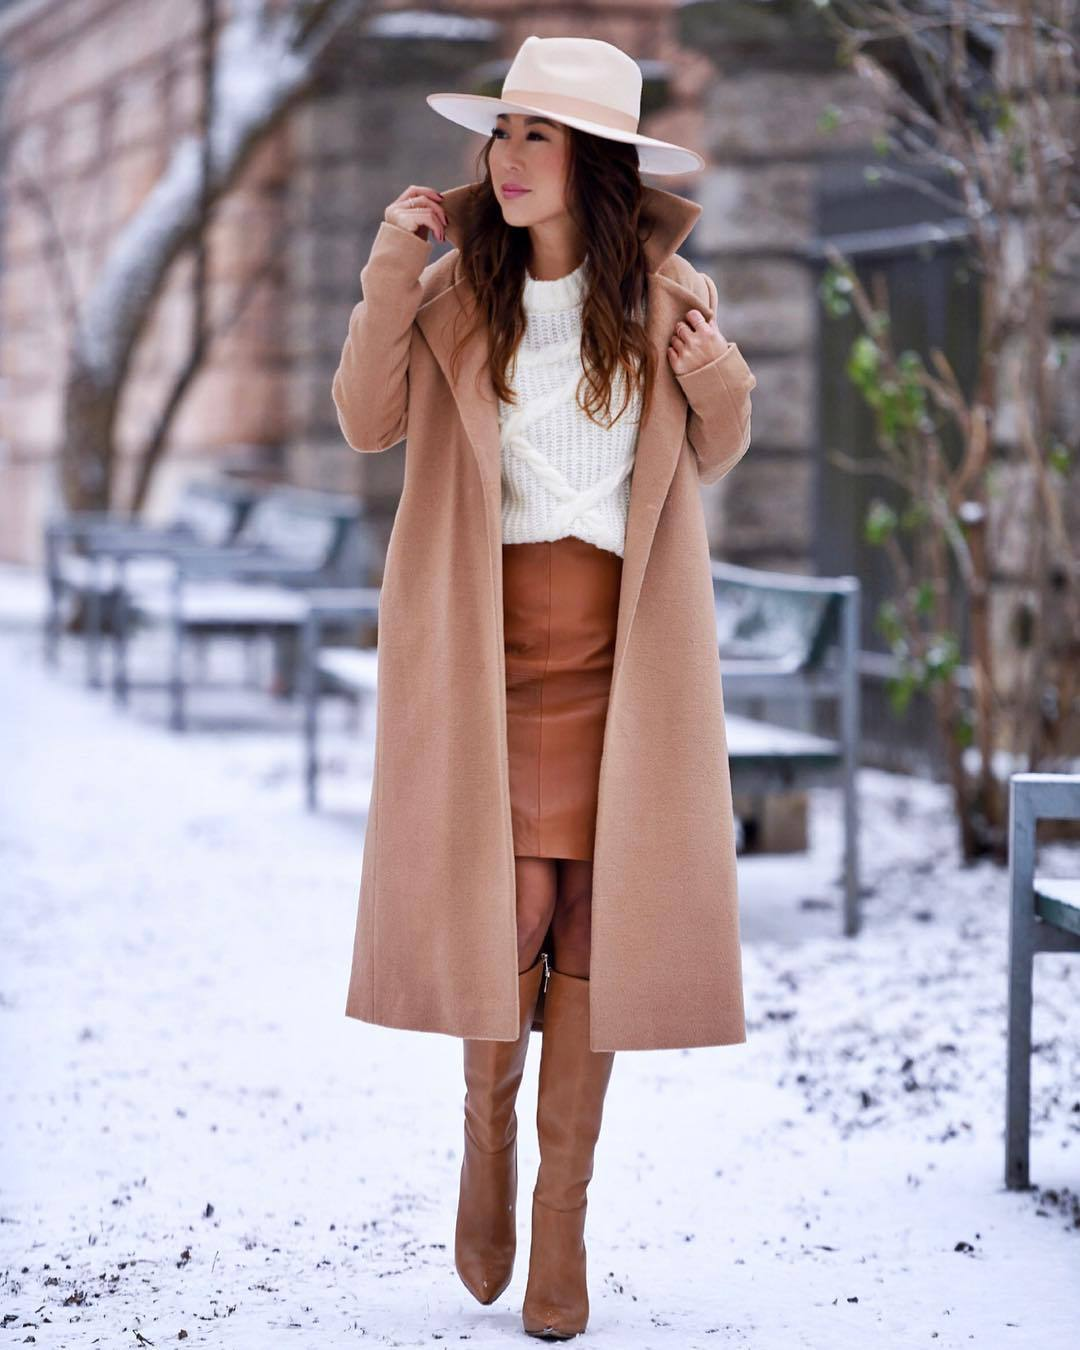 shoes knee high boots leather skirt white sweater knitted sweater camel coat long coat hat